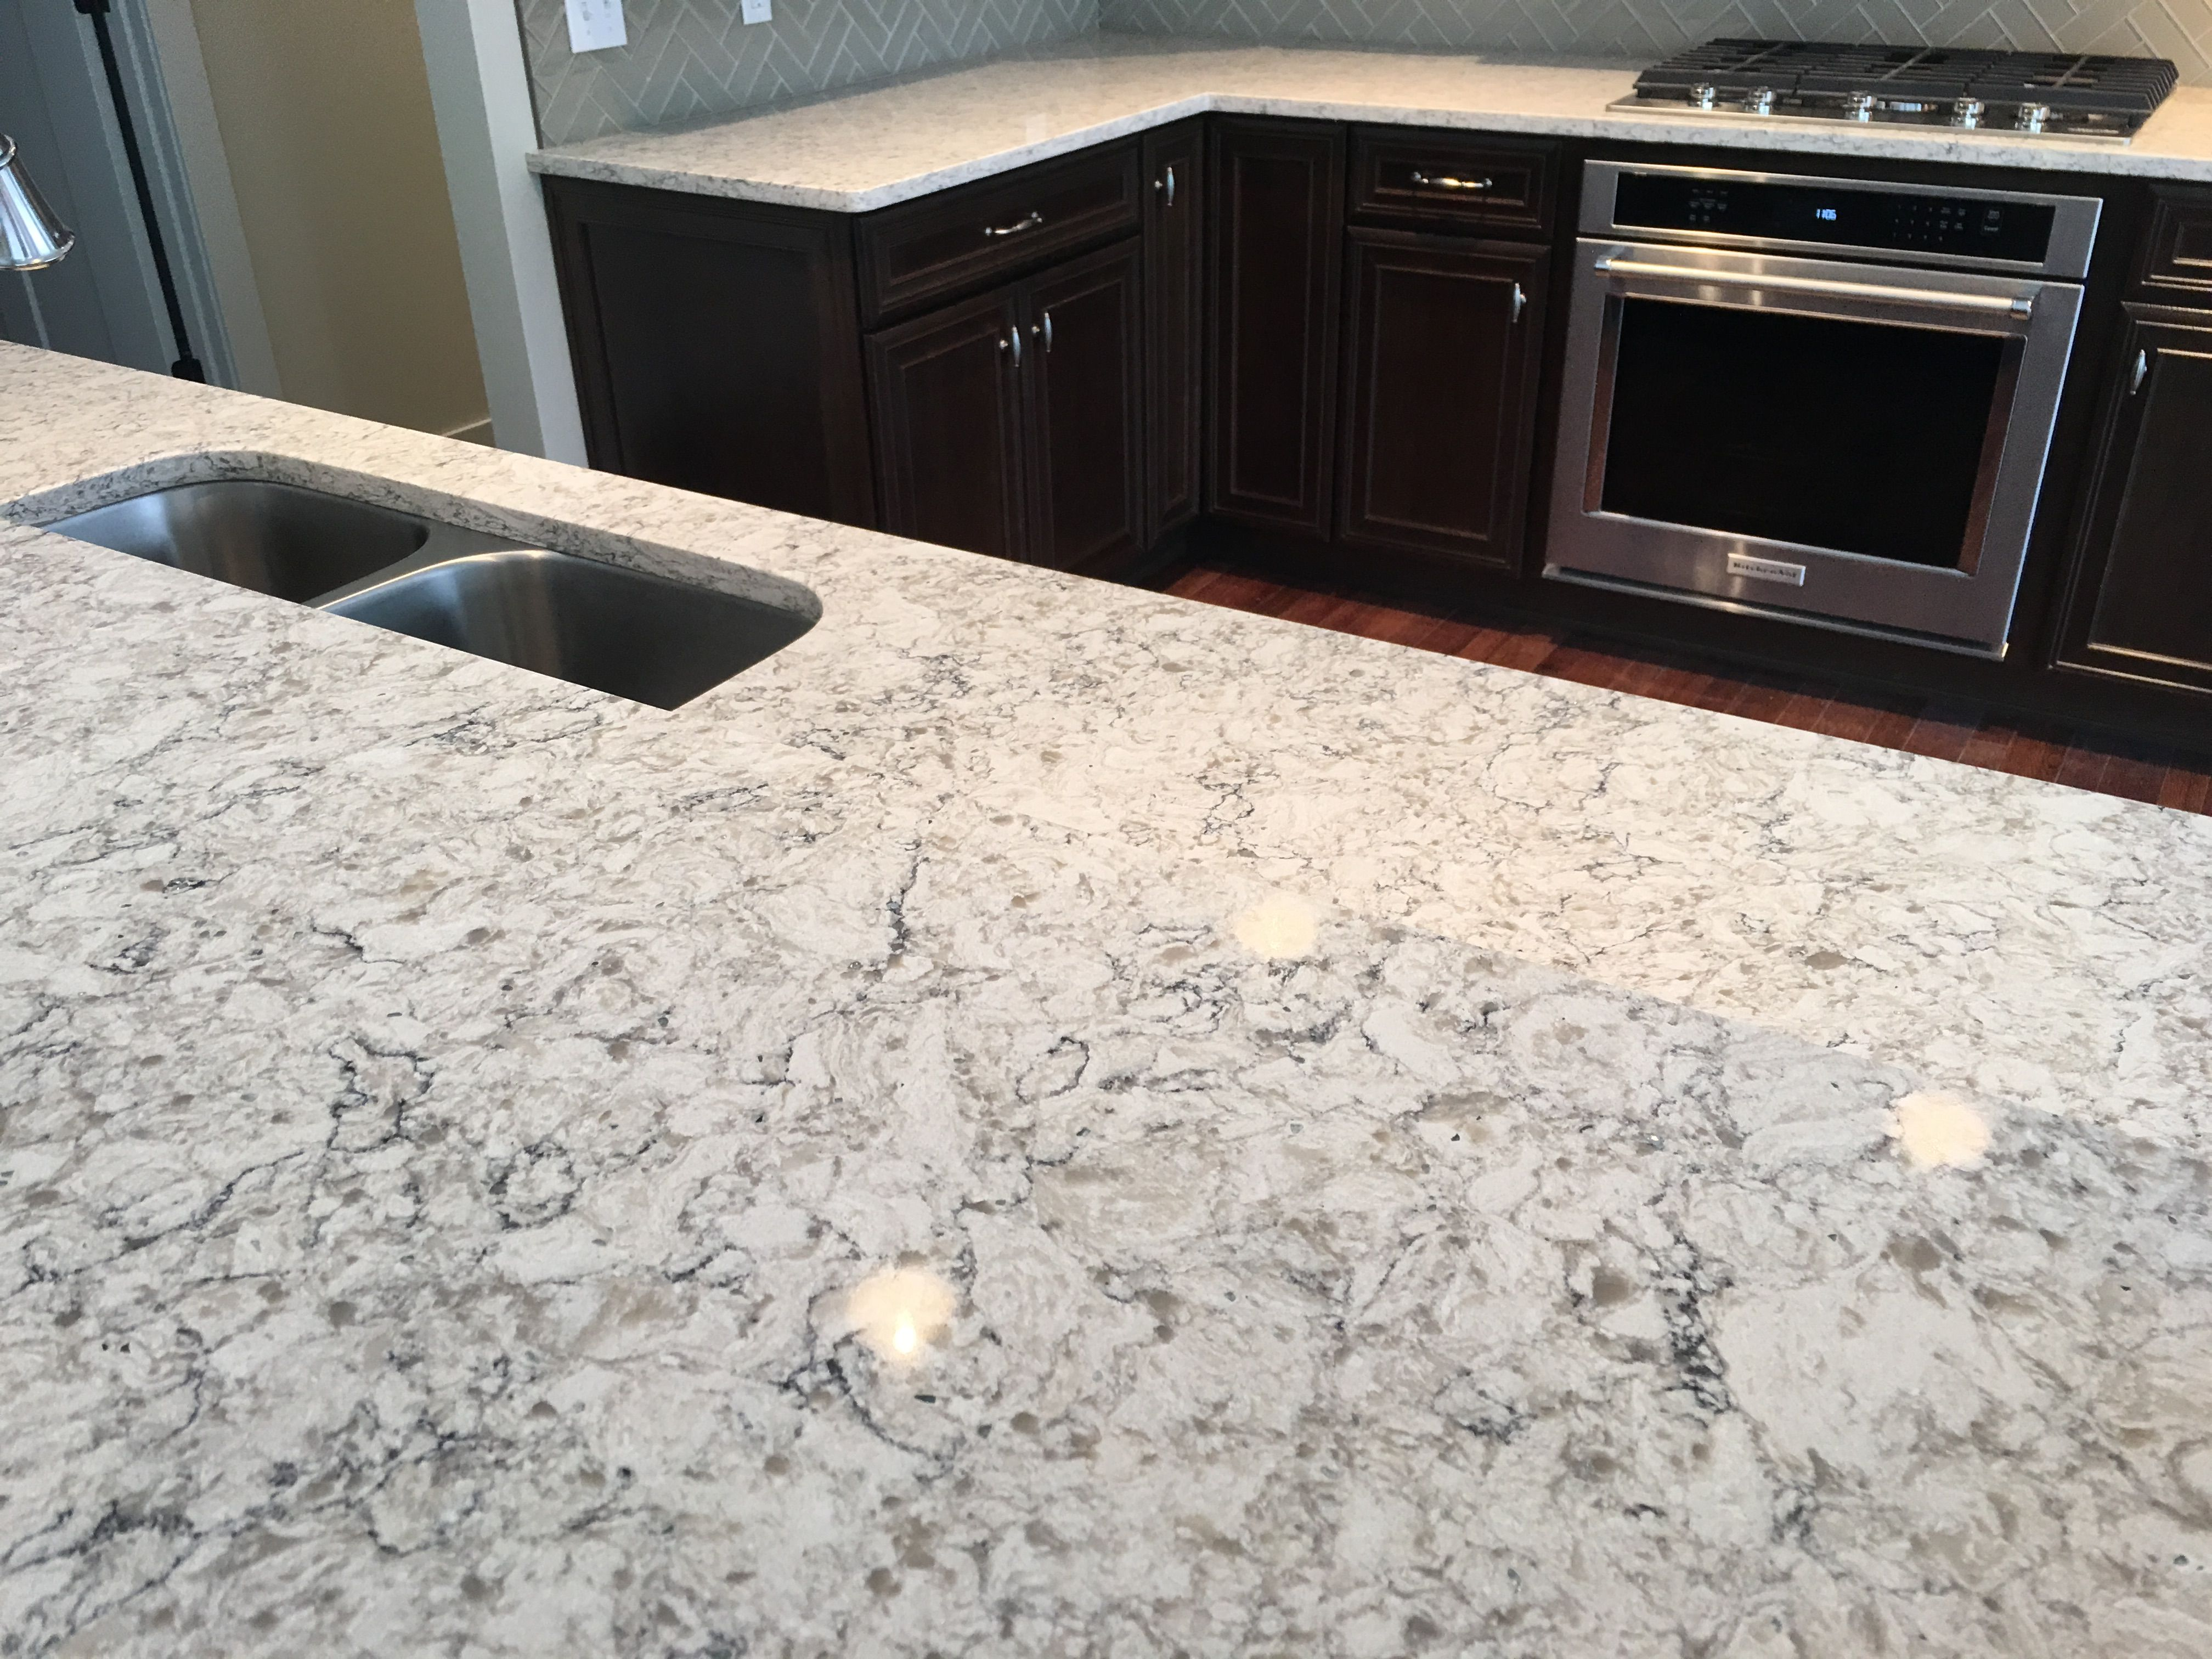 Man Made Quartz Countertops Cost Viatera Aria Quartz Countertop Kitchen Remodel Quartz